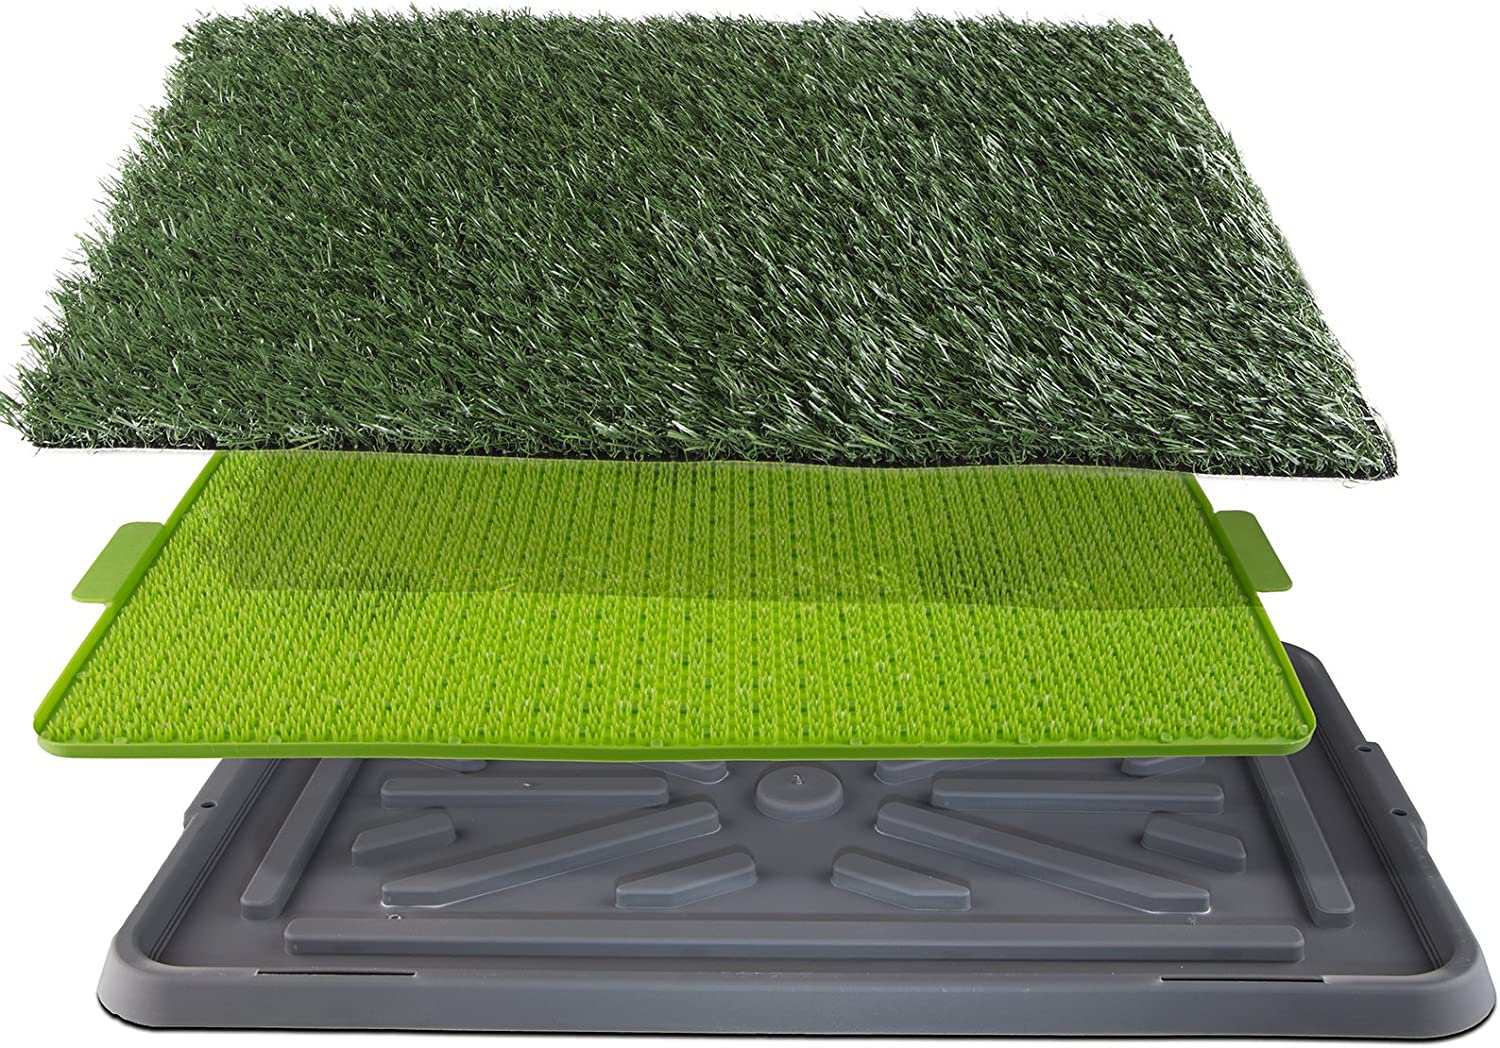 Dog Grass Pee Pad Potty Artificial Grass Patch For Dogs